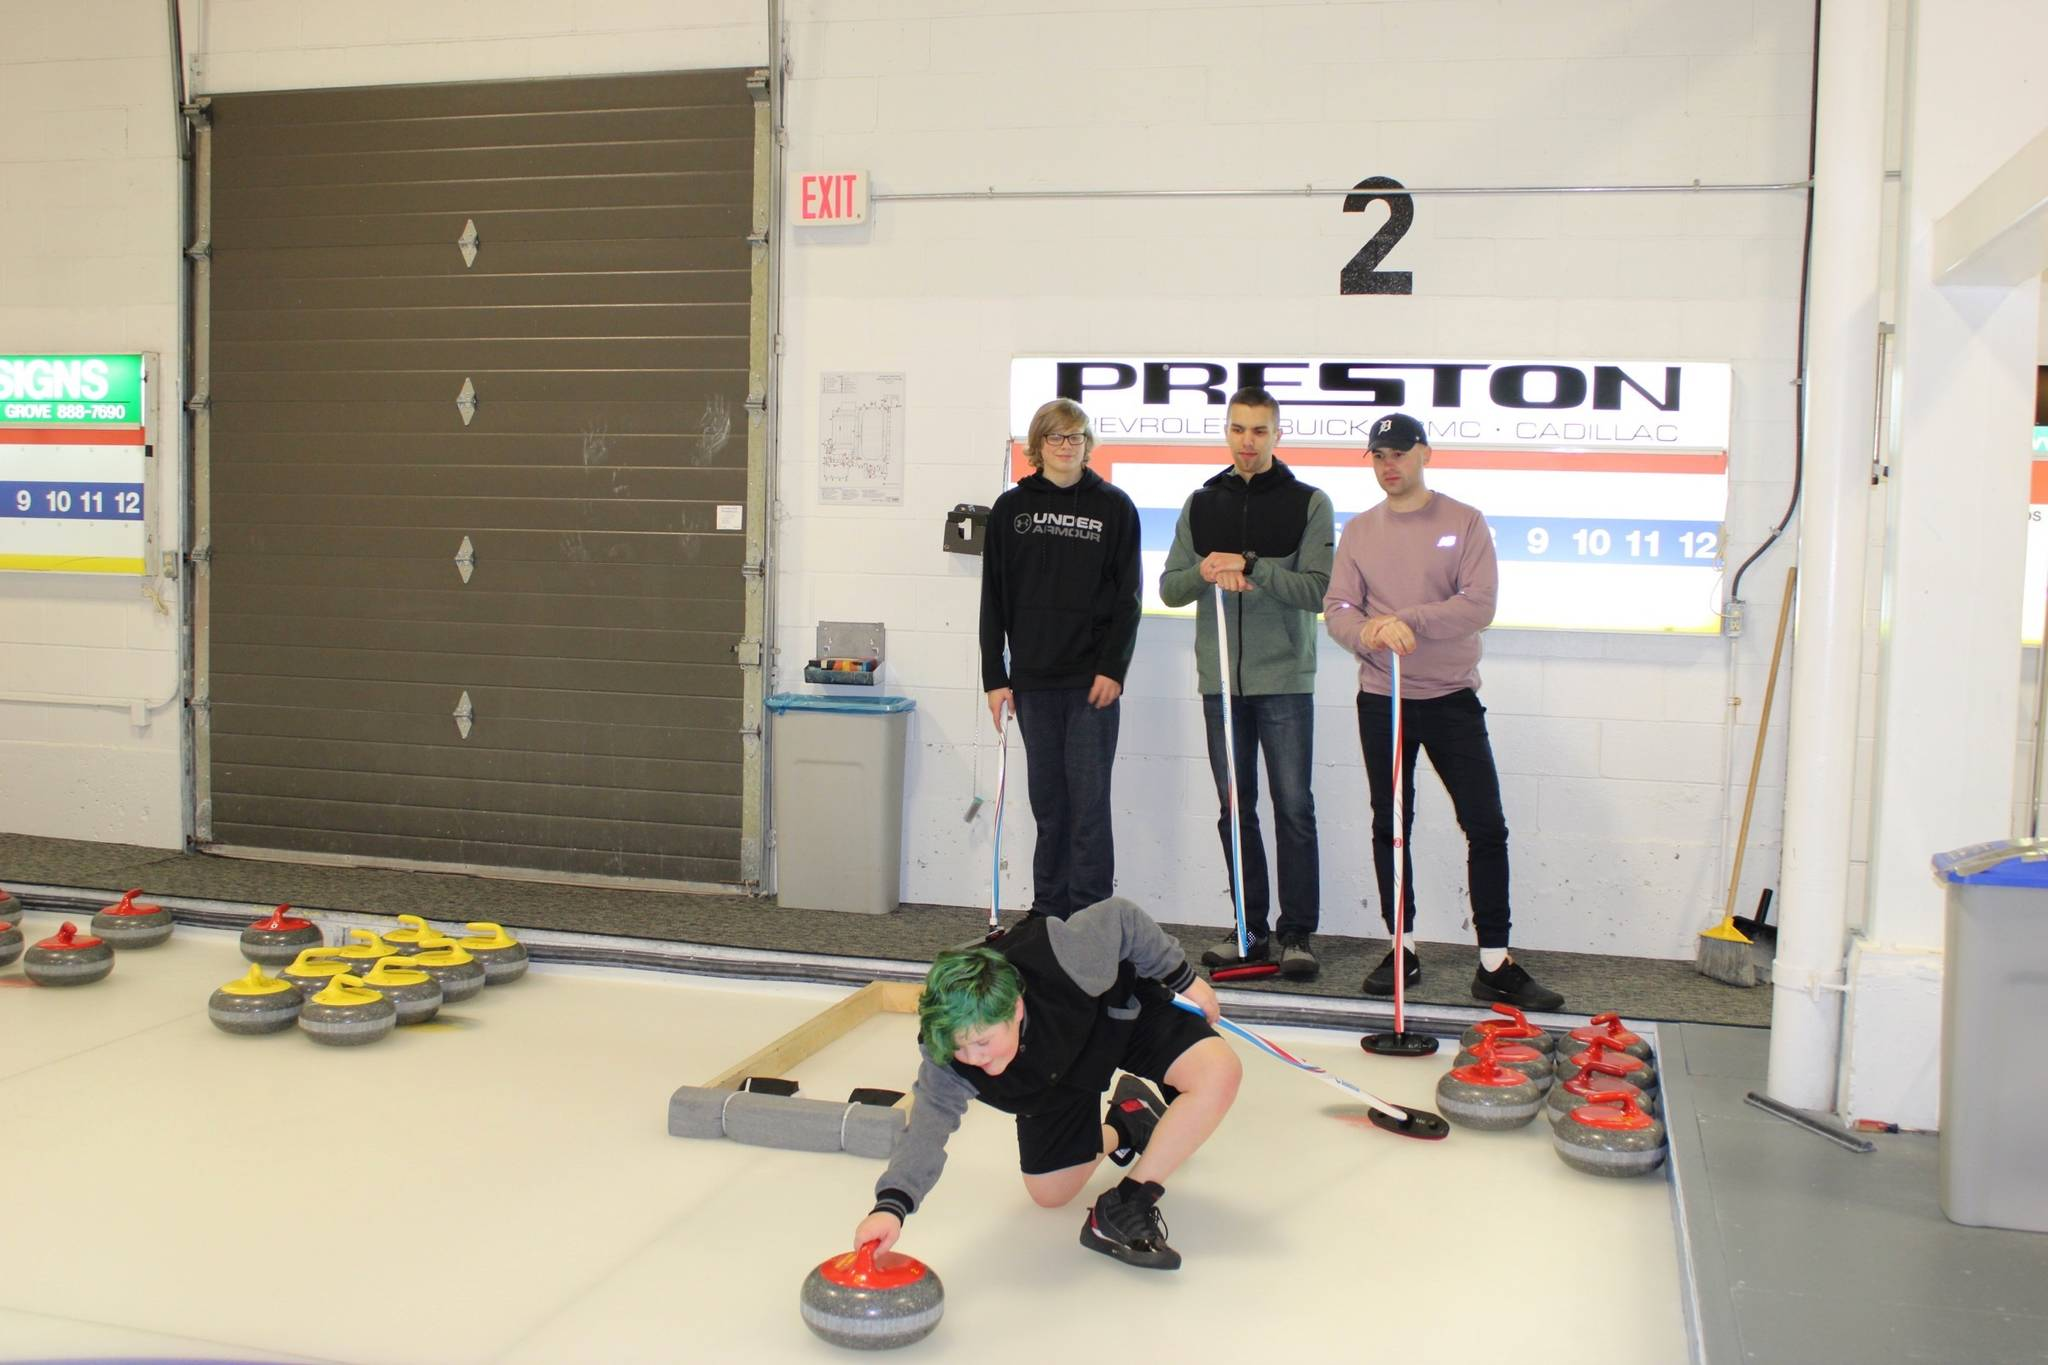 From left to right: Trenton, Caleb, Jason and Ryan from Big Brothers Big Sisters Langley enjoyed themselves at the Langley Curling Centre open house (Photo by Kieran O'Connor/Black Press Media).